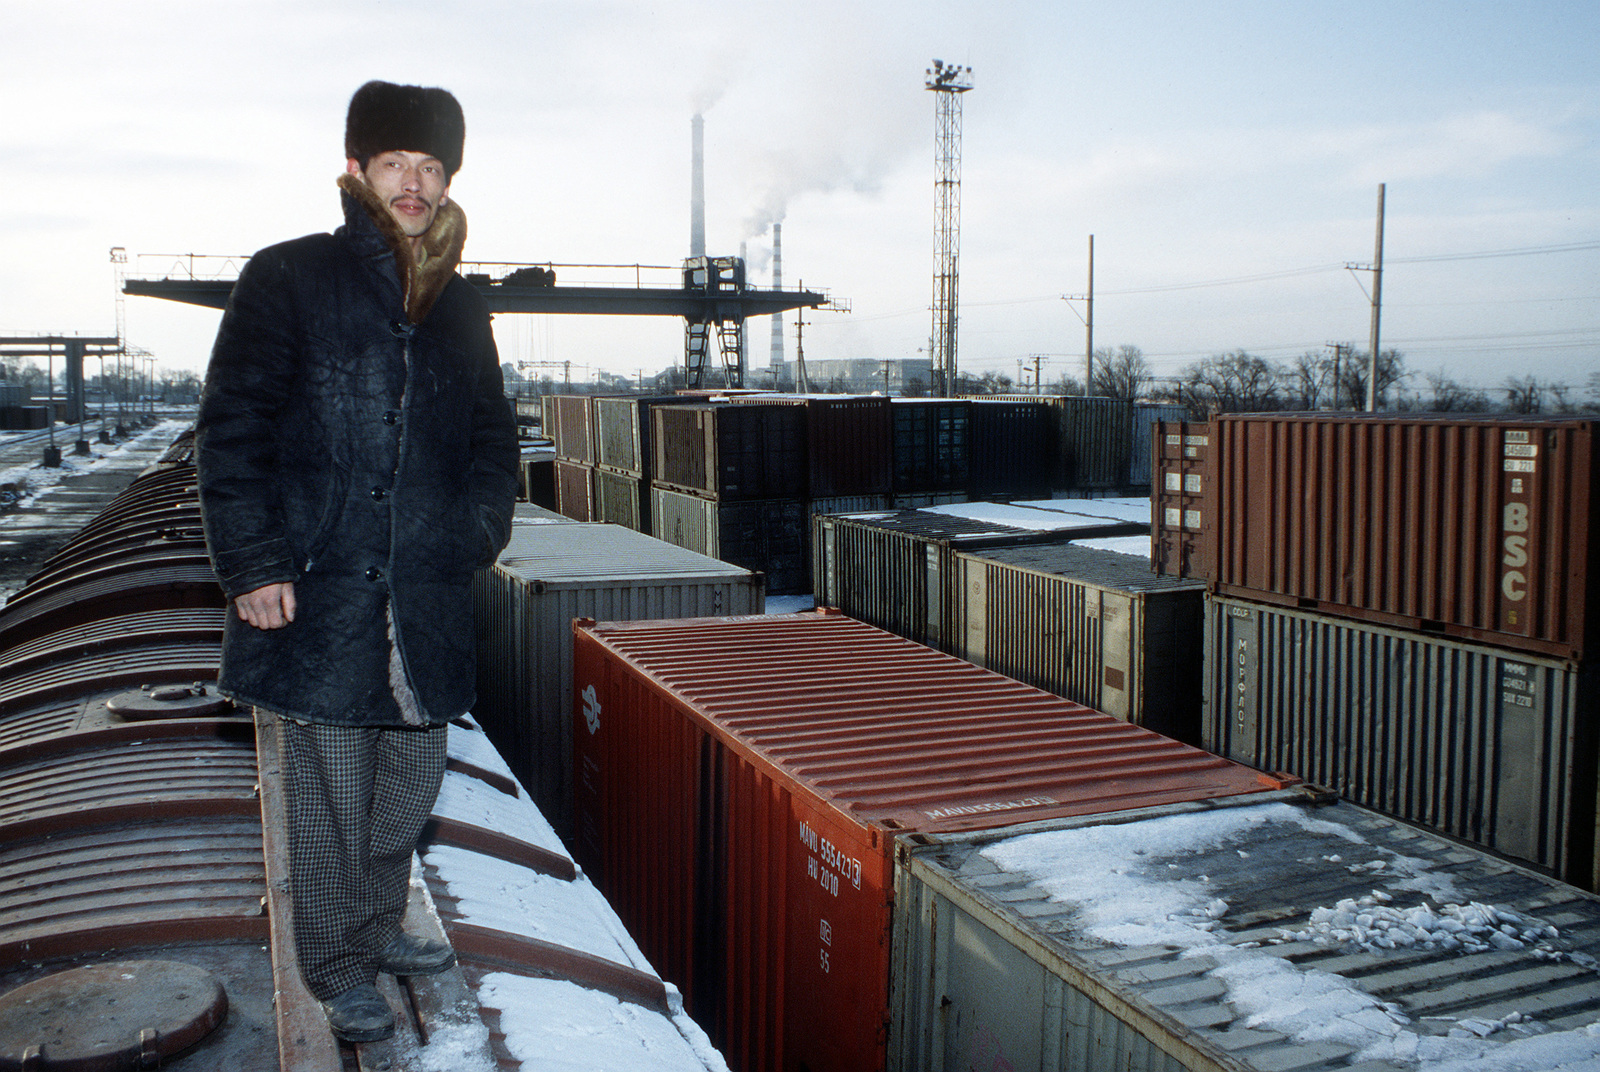 A local resident stands atop a railcar at the Kizghiz Railyard